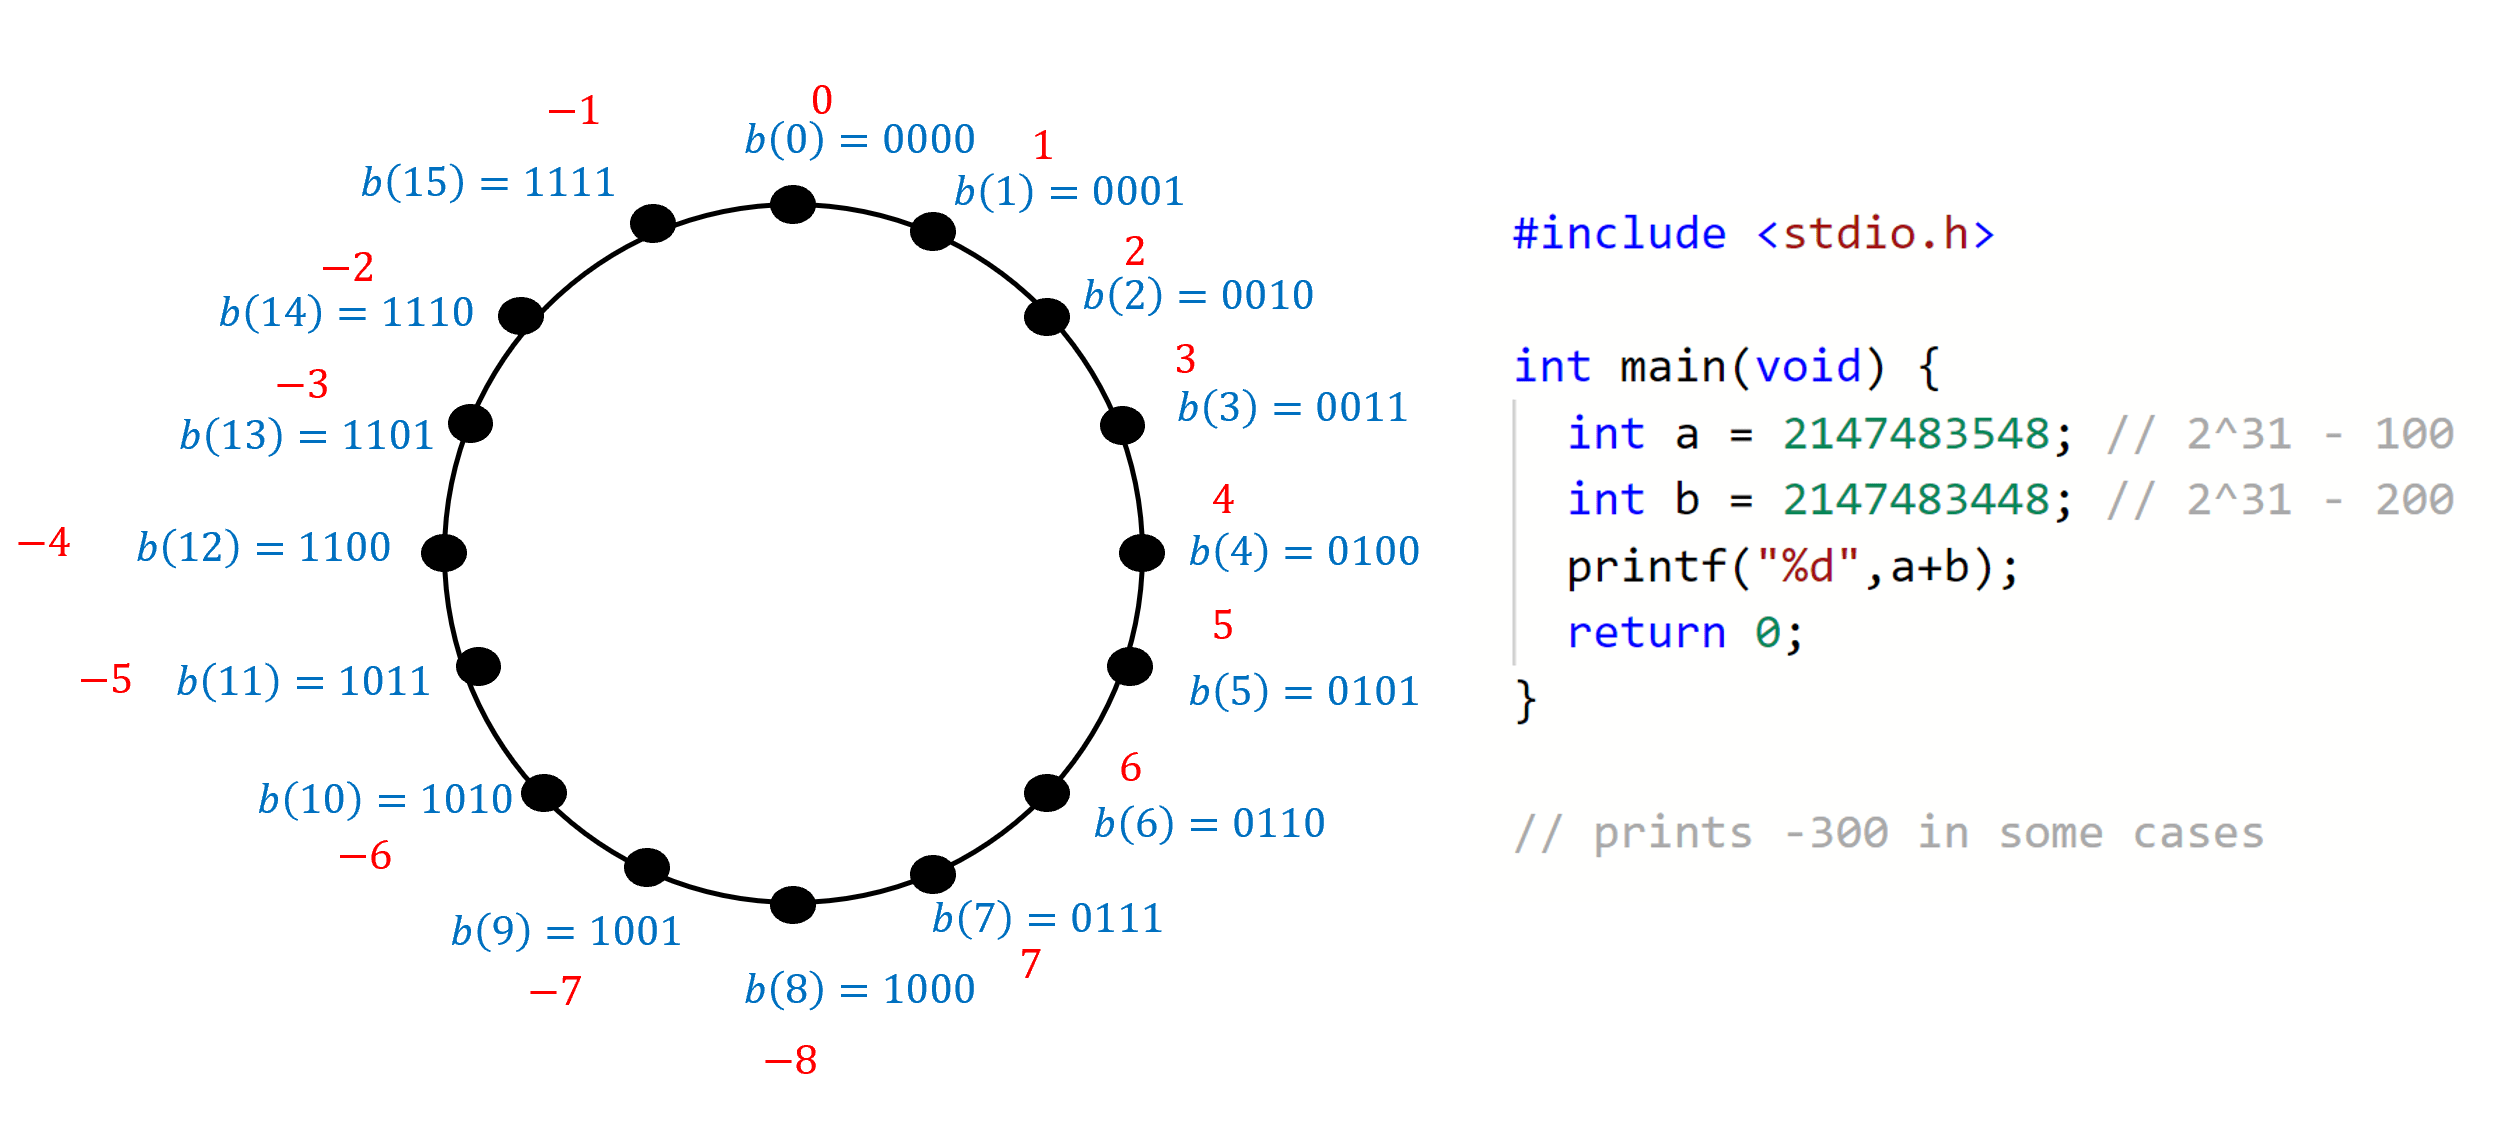 2.4: In the two's complement representation we represent a potentially negative integer k \in \{ -2^n ,\ldots, 2^n-1 \} as an n+1 length string using the binary representation of the integer k \mod 2^{n+1}. On the lefthand side: this representation for n=3 (the red integers are the numbers being represented by the blue binary strings). If a microprocessor does not check for overflows, adding the two positive numbers 6 and 5 might result in the negative number -5 (since -5 \mod 16 = 11. The righthand side is a C program that will on some 32 bit architecture print a negative number after adding two positive numbers. (Integer overflow in C is considered undefined behavior which means the result of this program, including whether it runs or crashes, could differ depending on the architecture, compiler, and even compiler options and version.)